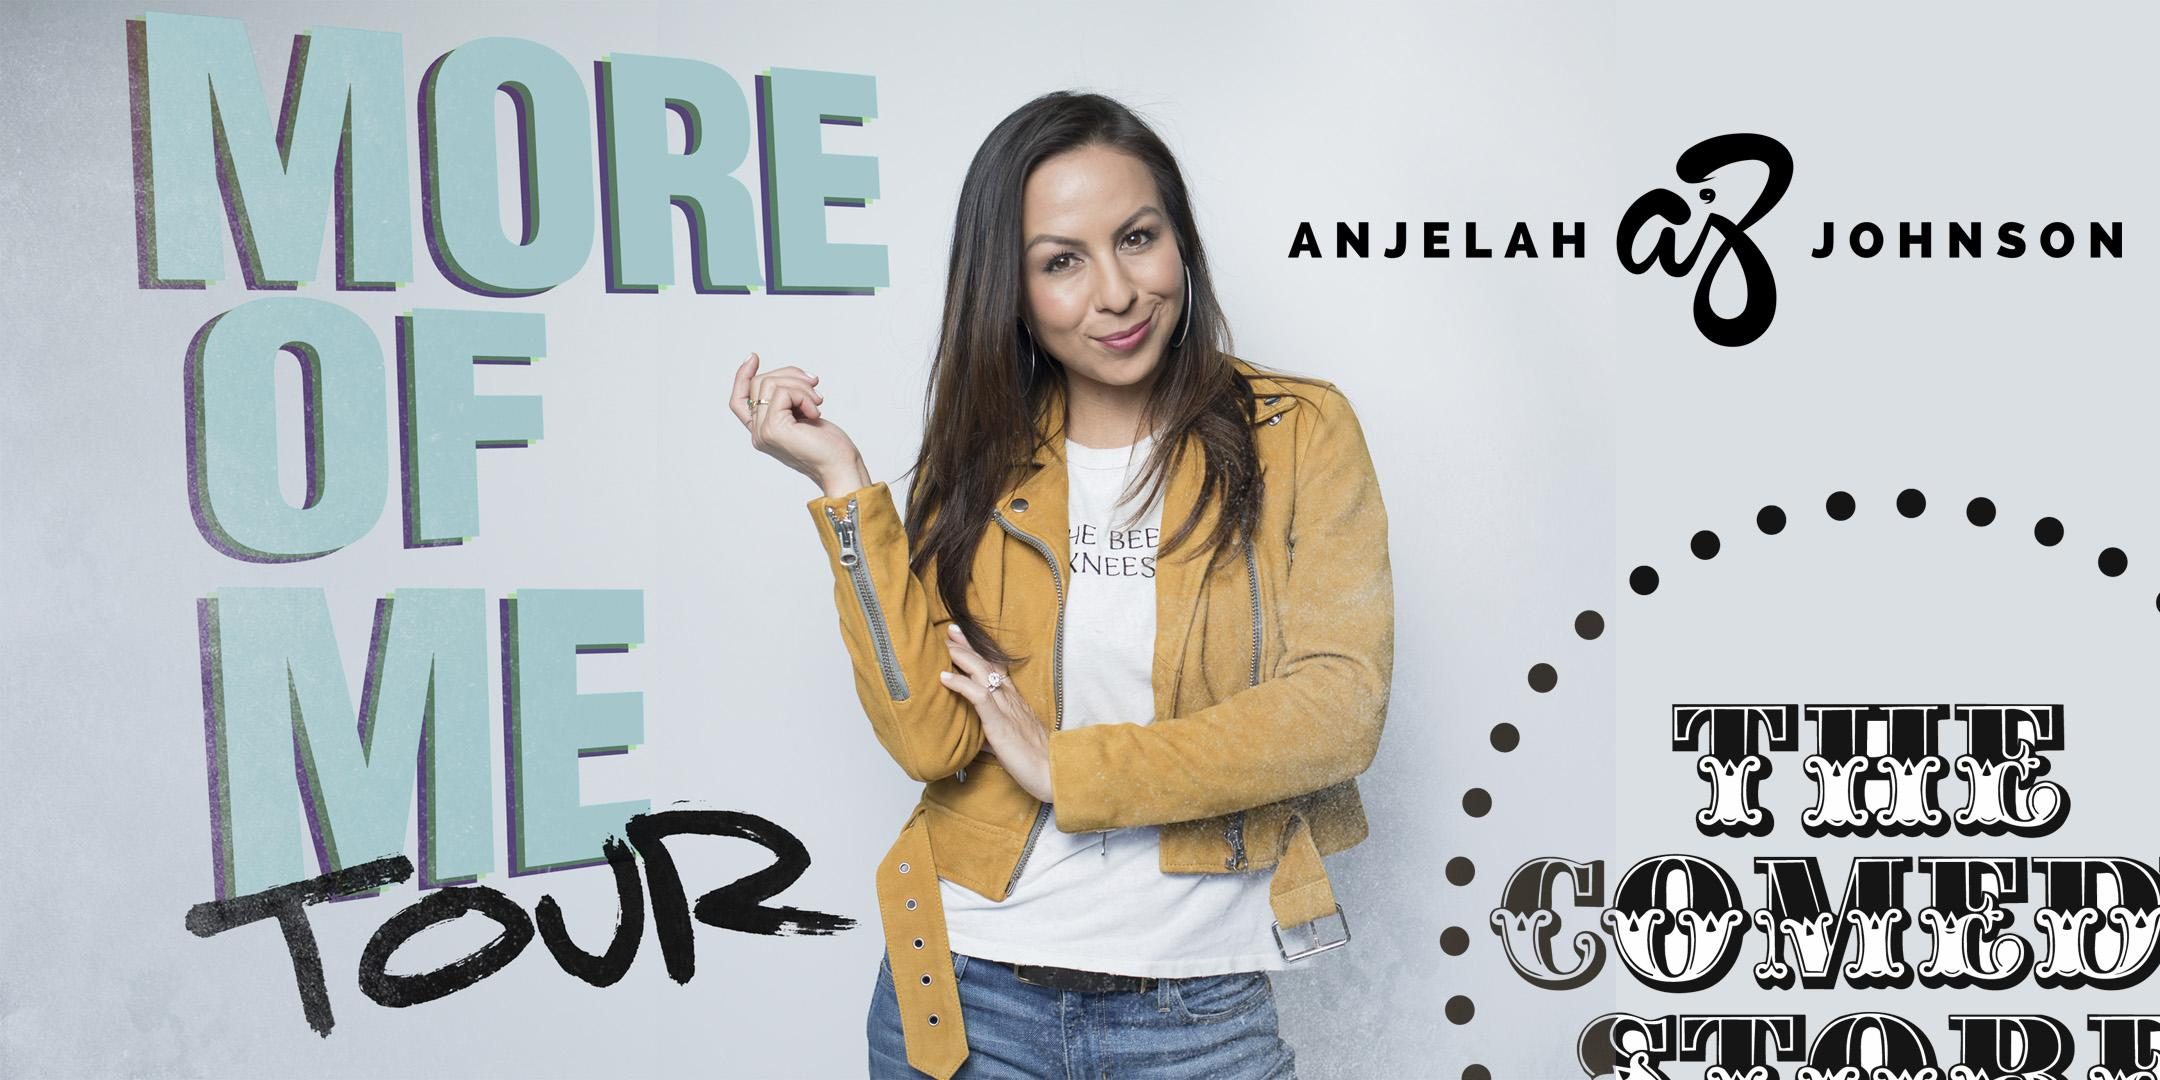 Anjelah Johnson - March 7th - Thursday 7:30pm